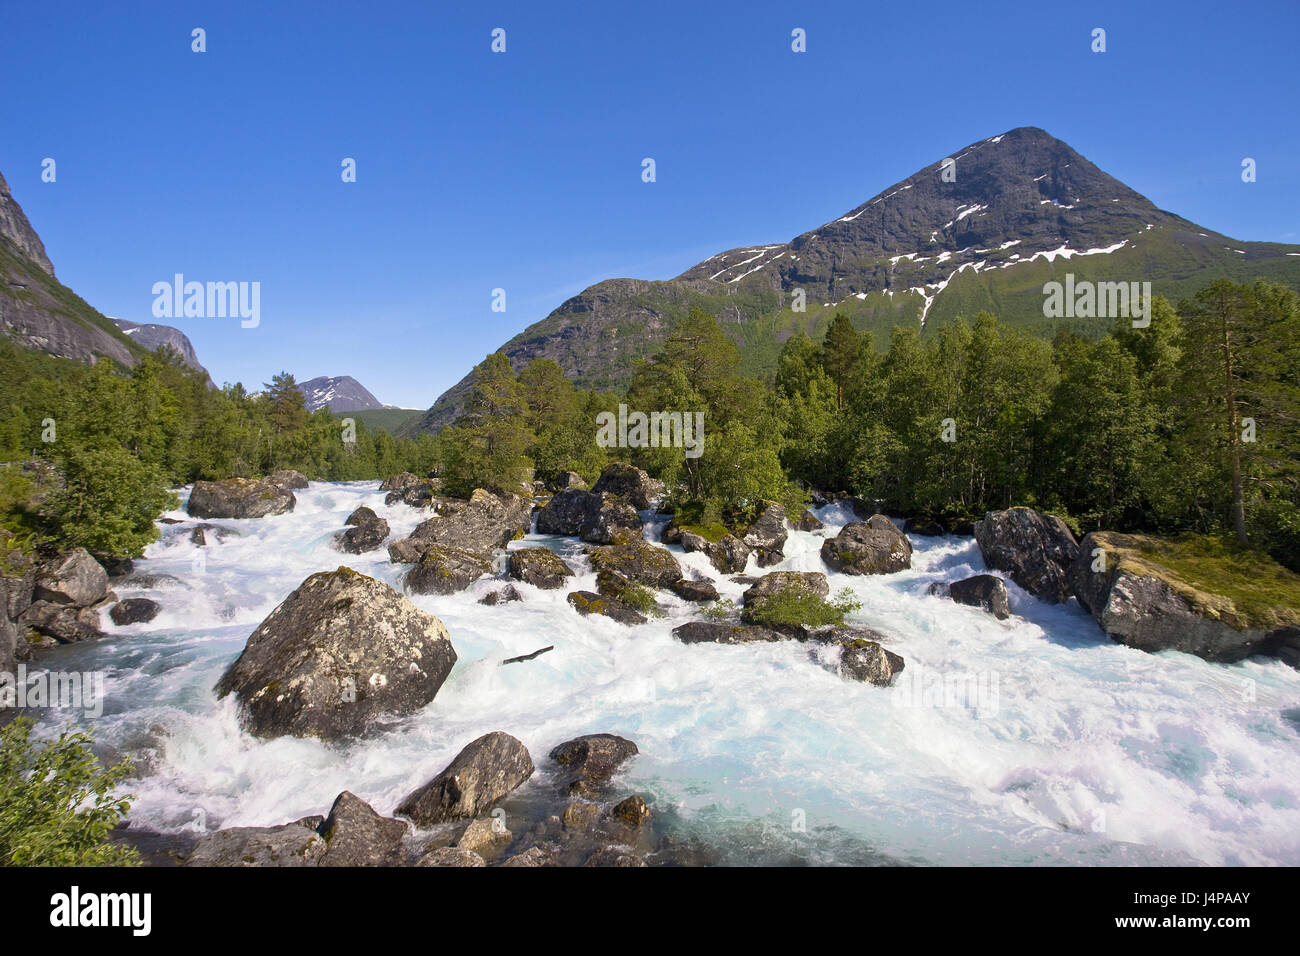 Norway, More og Romsdal, waterfall, - Stock Image